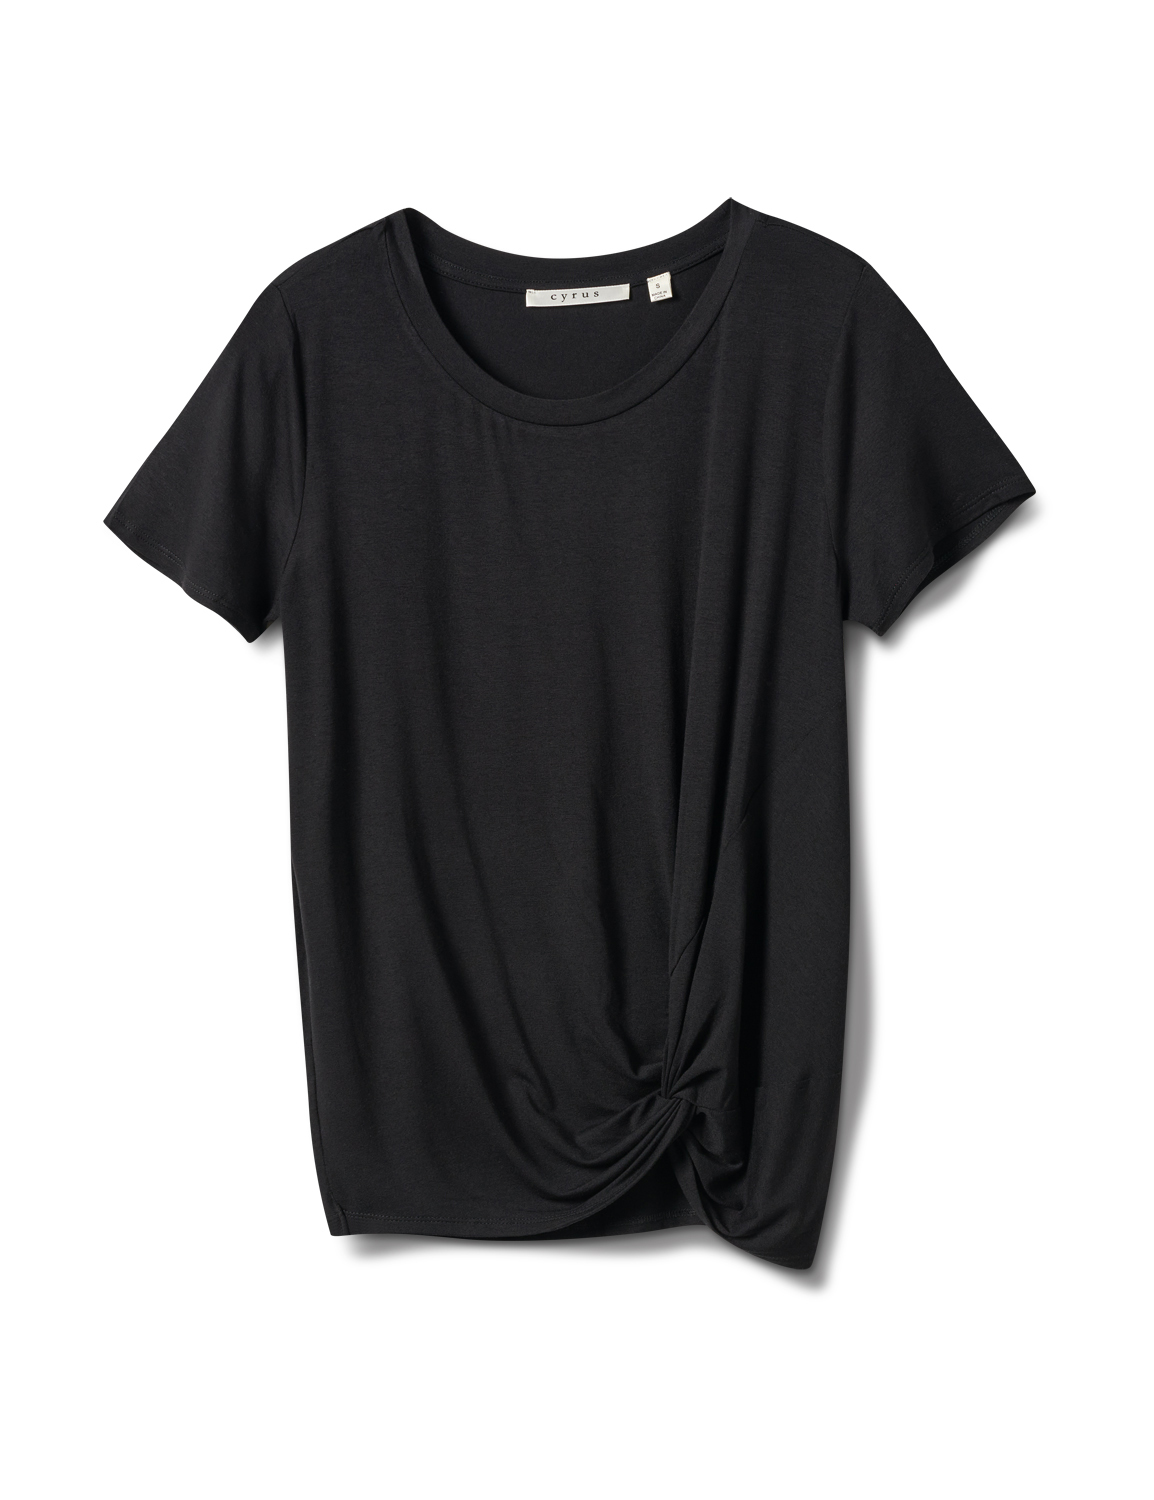 Knot Front Rayon Span Knit Tee -Black - Front